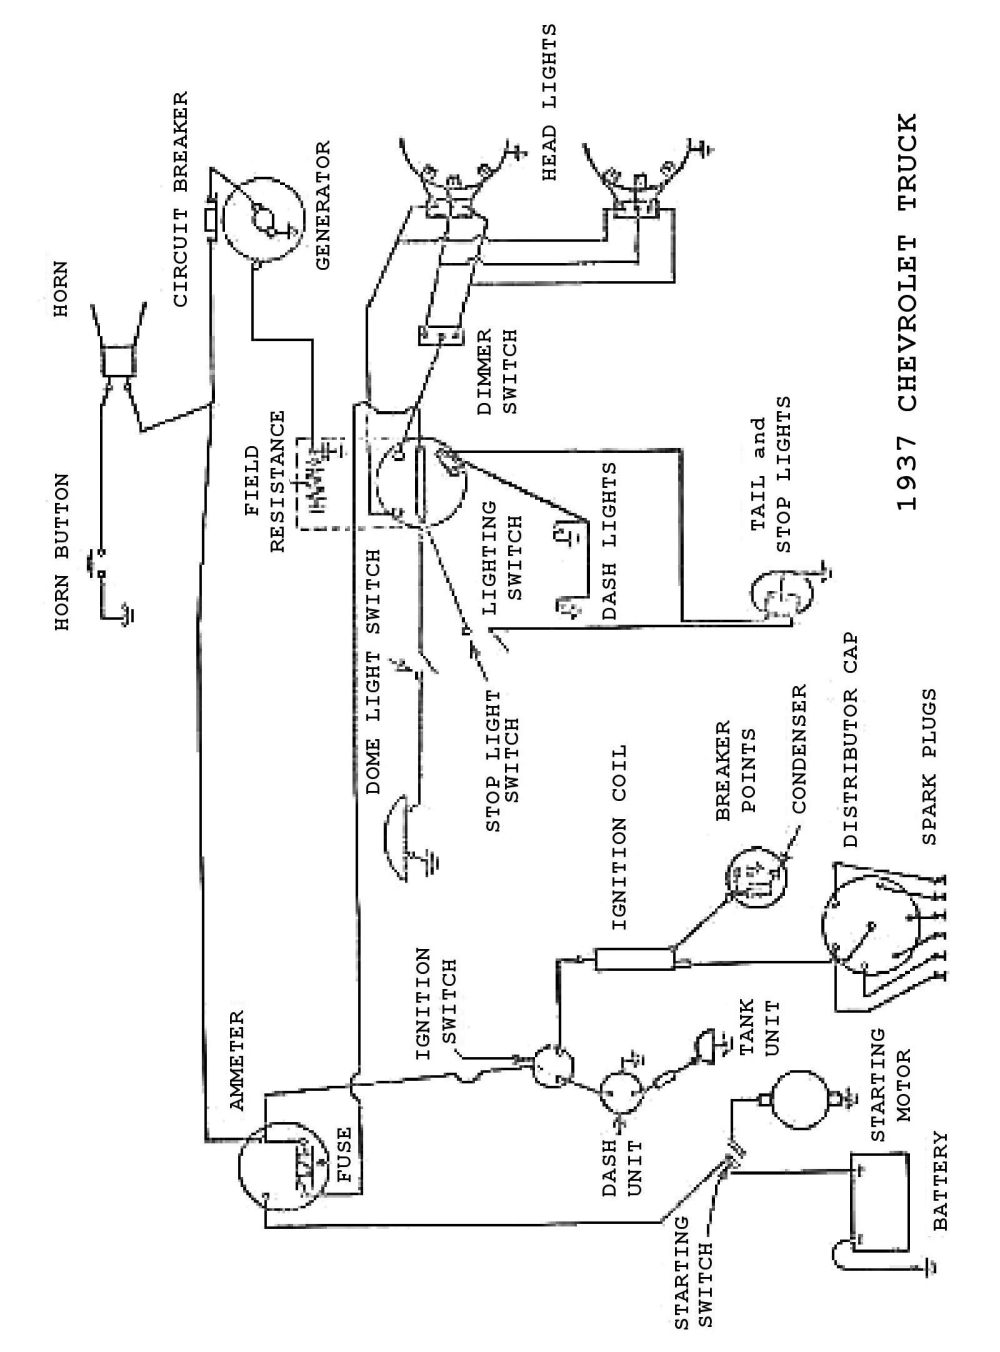 medium resolution of chevrolet 235 engine diagram wiring librarychevy wiring diagrams chevrolet 235 engine